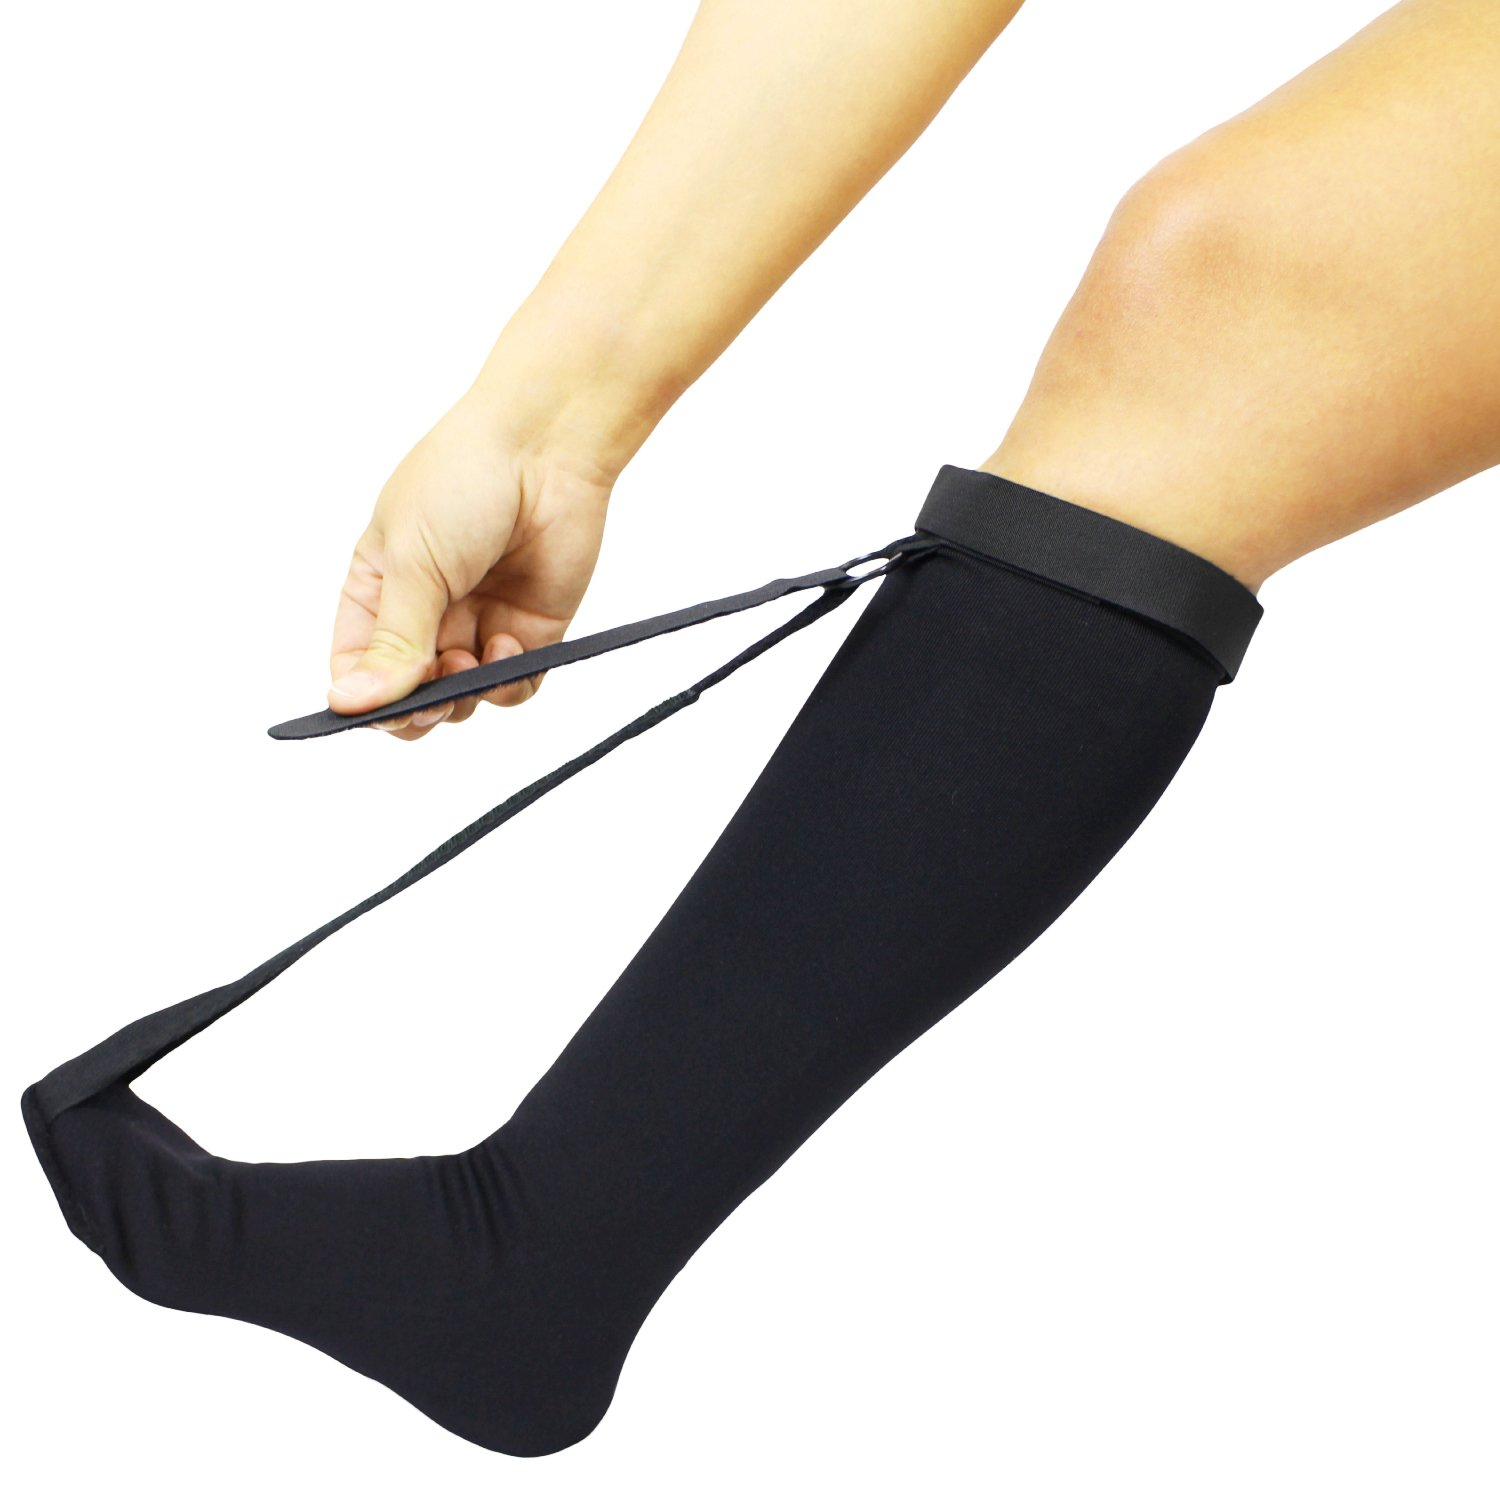 Plantar Fasciitis Sock by Vive - Night Sock for Achilles Tendonitis & Heel Pain Relief - Support Stretch Therapy